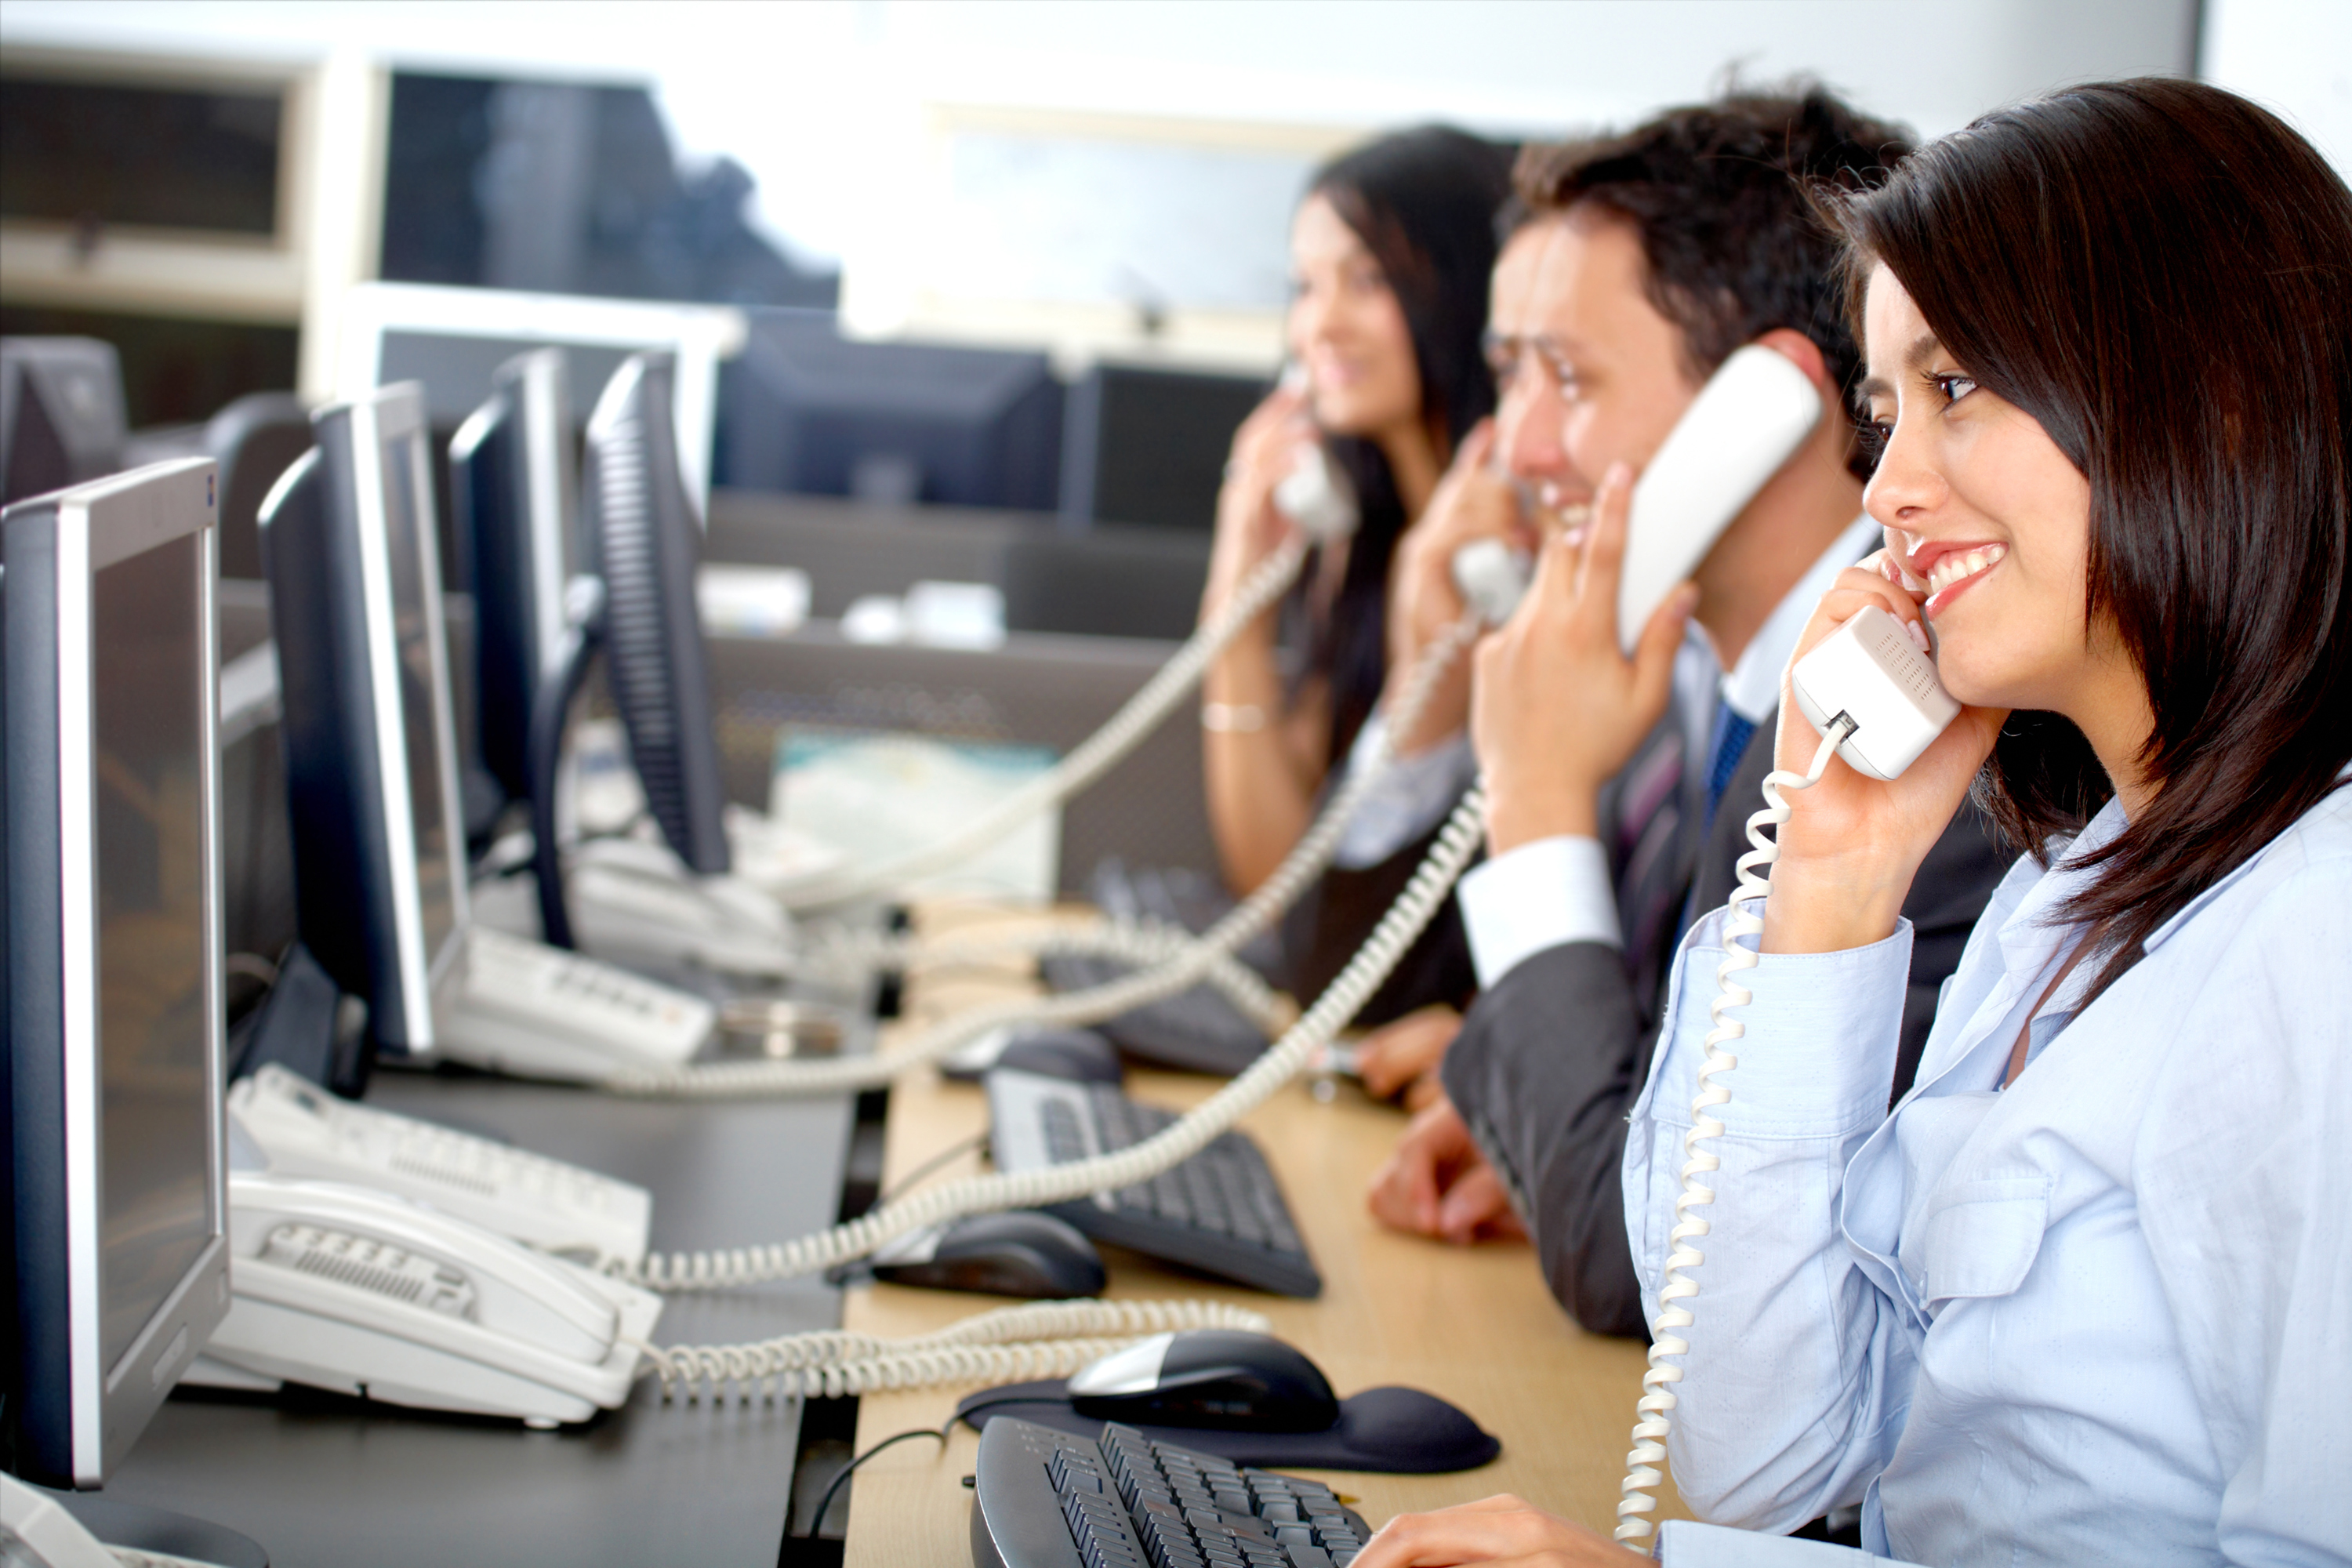 The telemarketing business